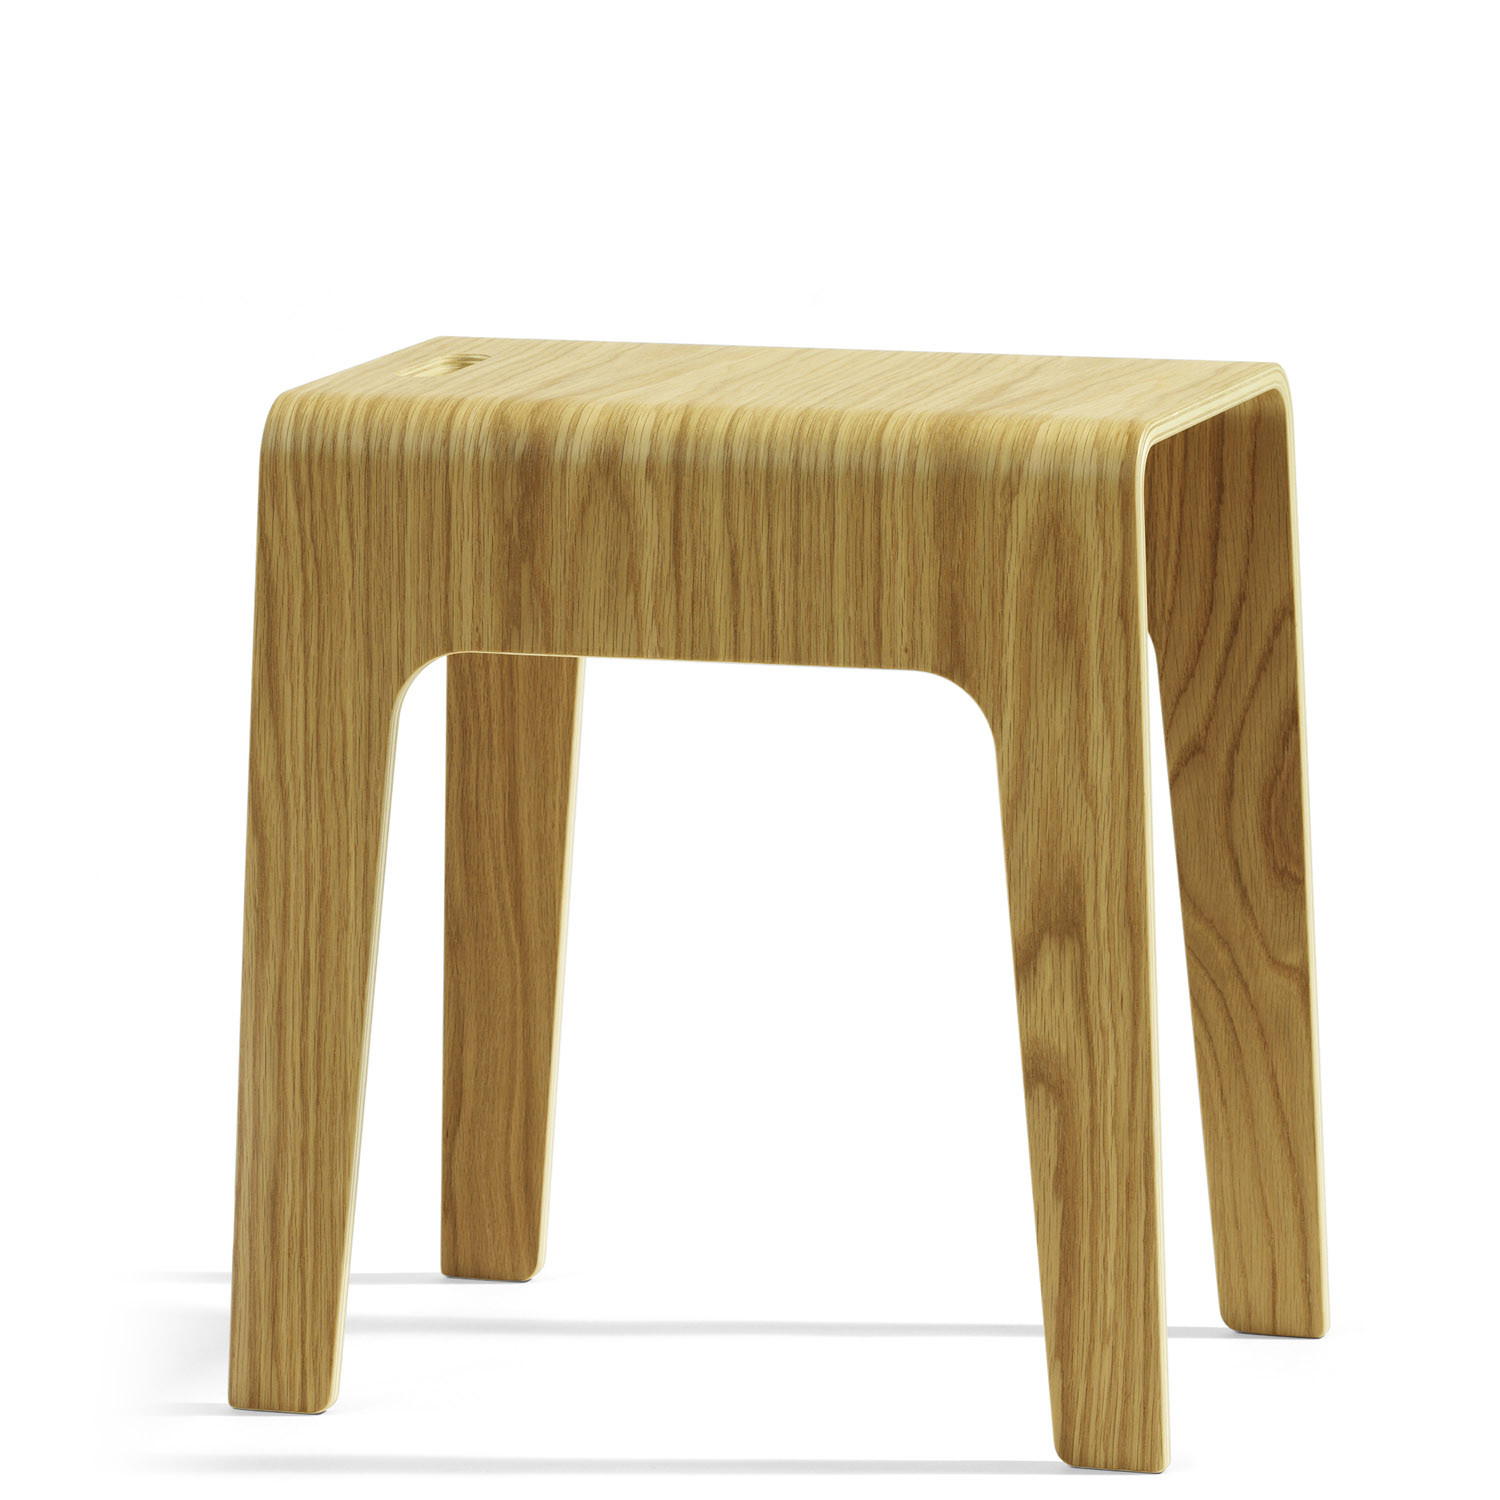 Bimbed Low Stool for Breakout Areas